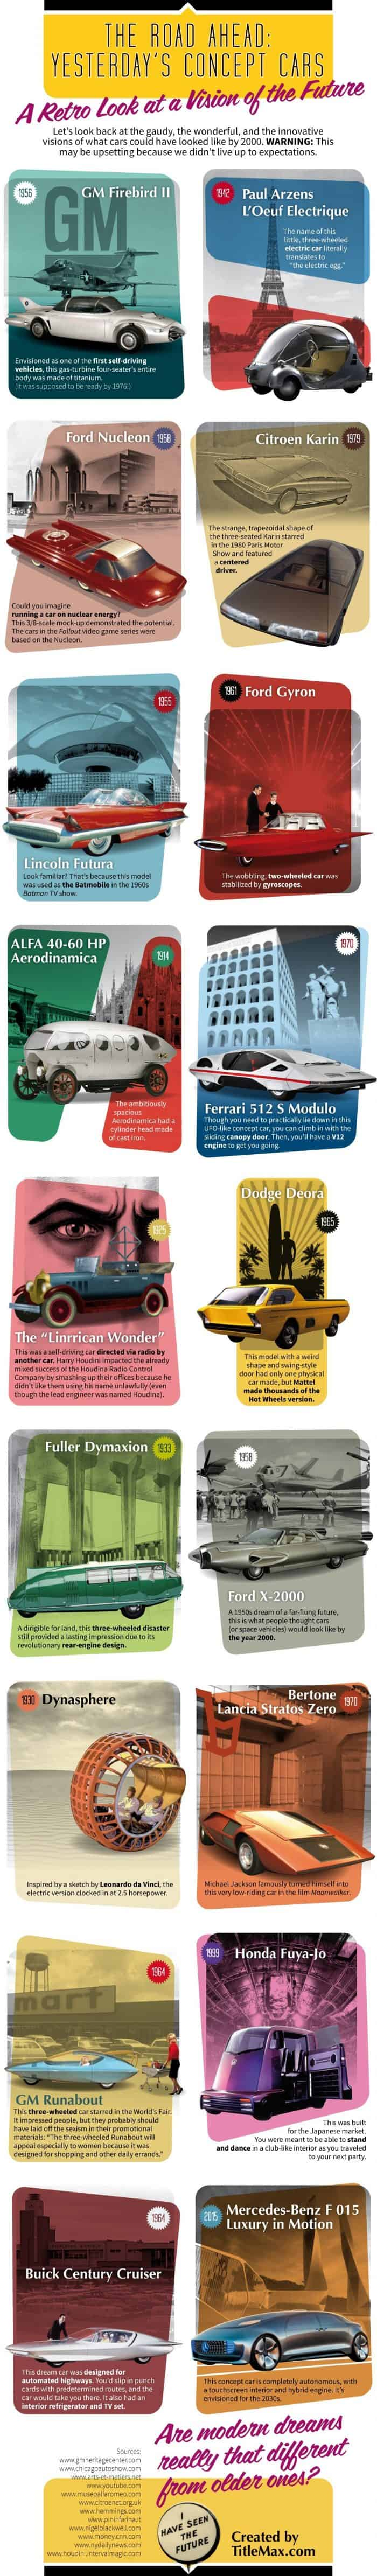 Yesterday's Concept Cars